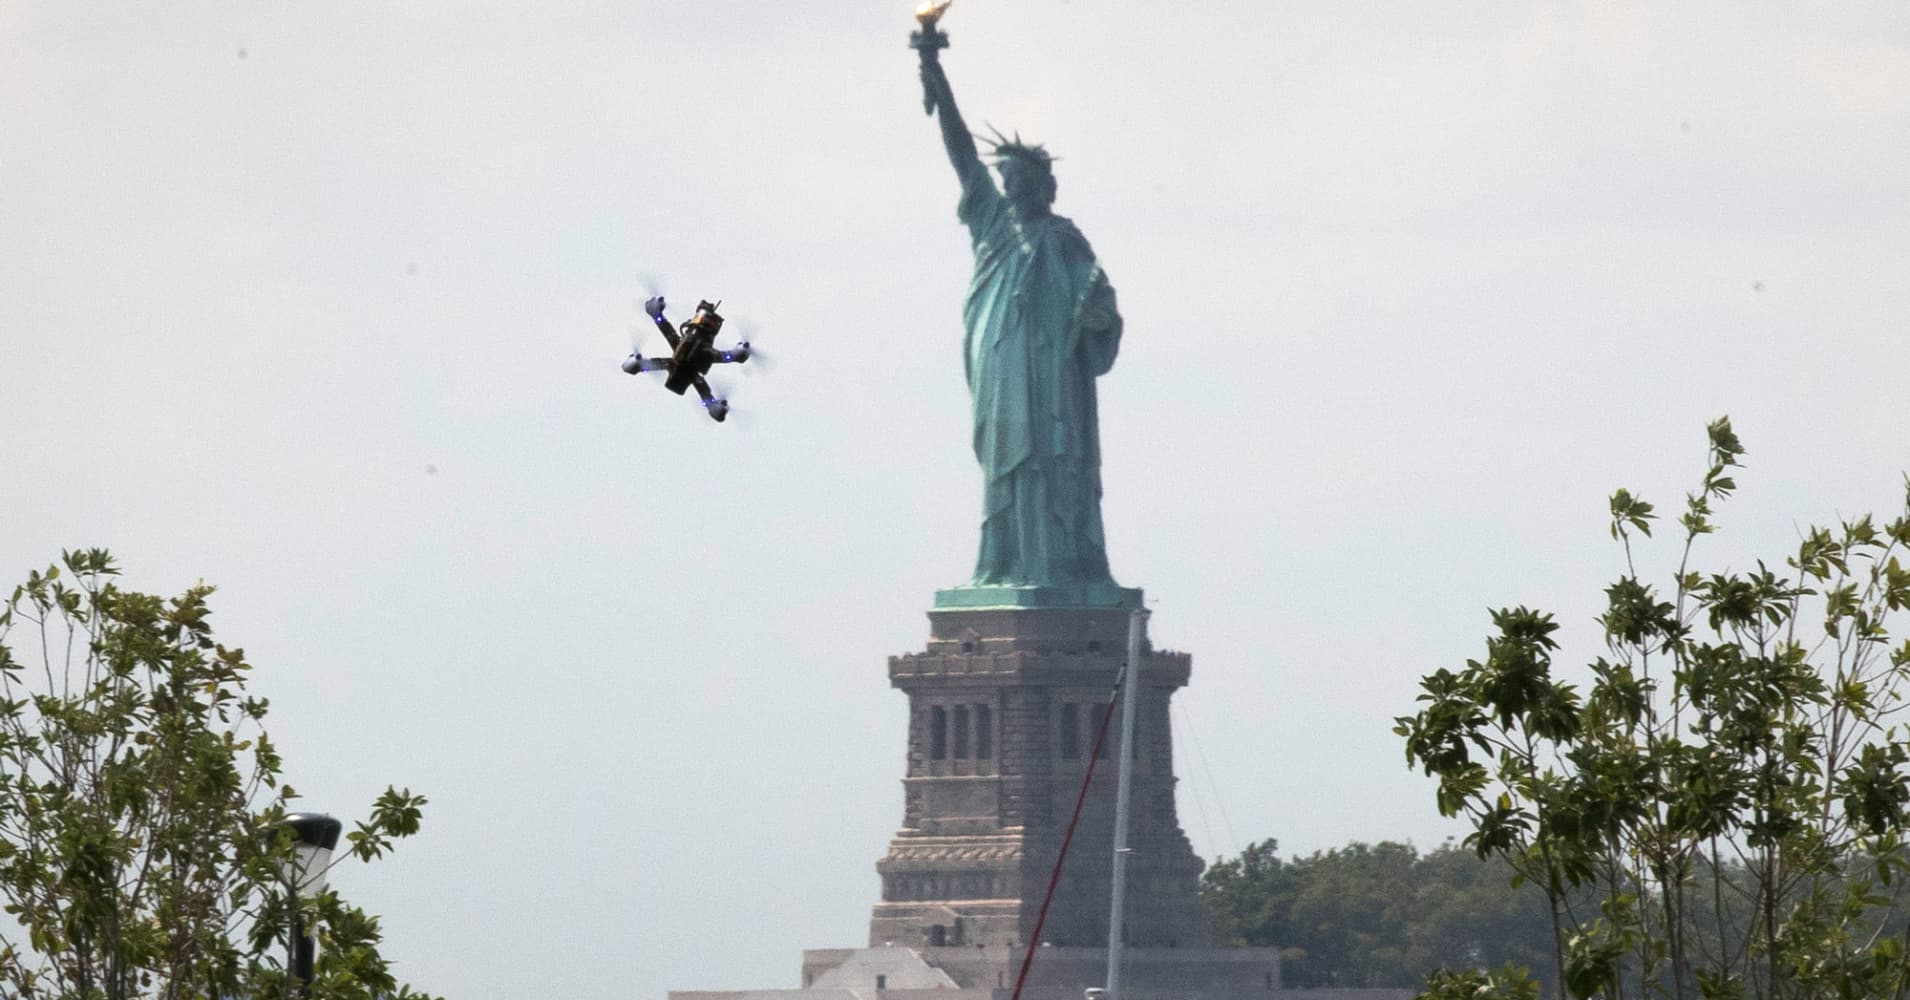 A drone flies near the Statue of Liberty in New York.